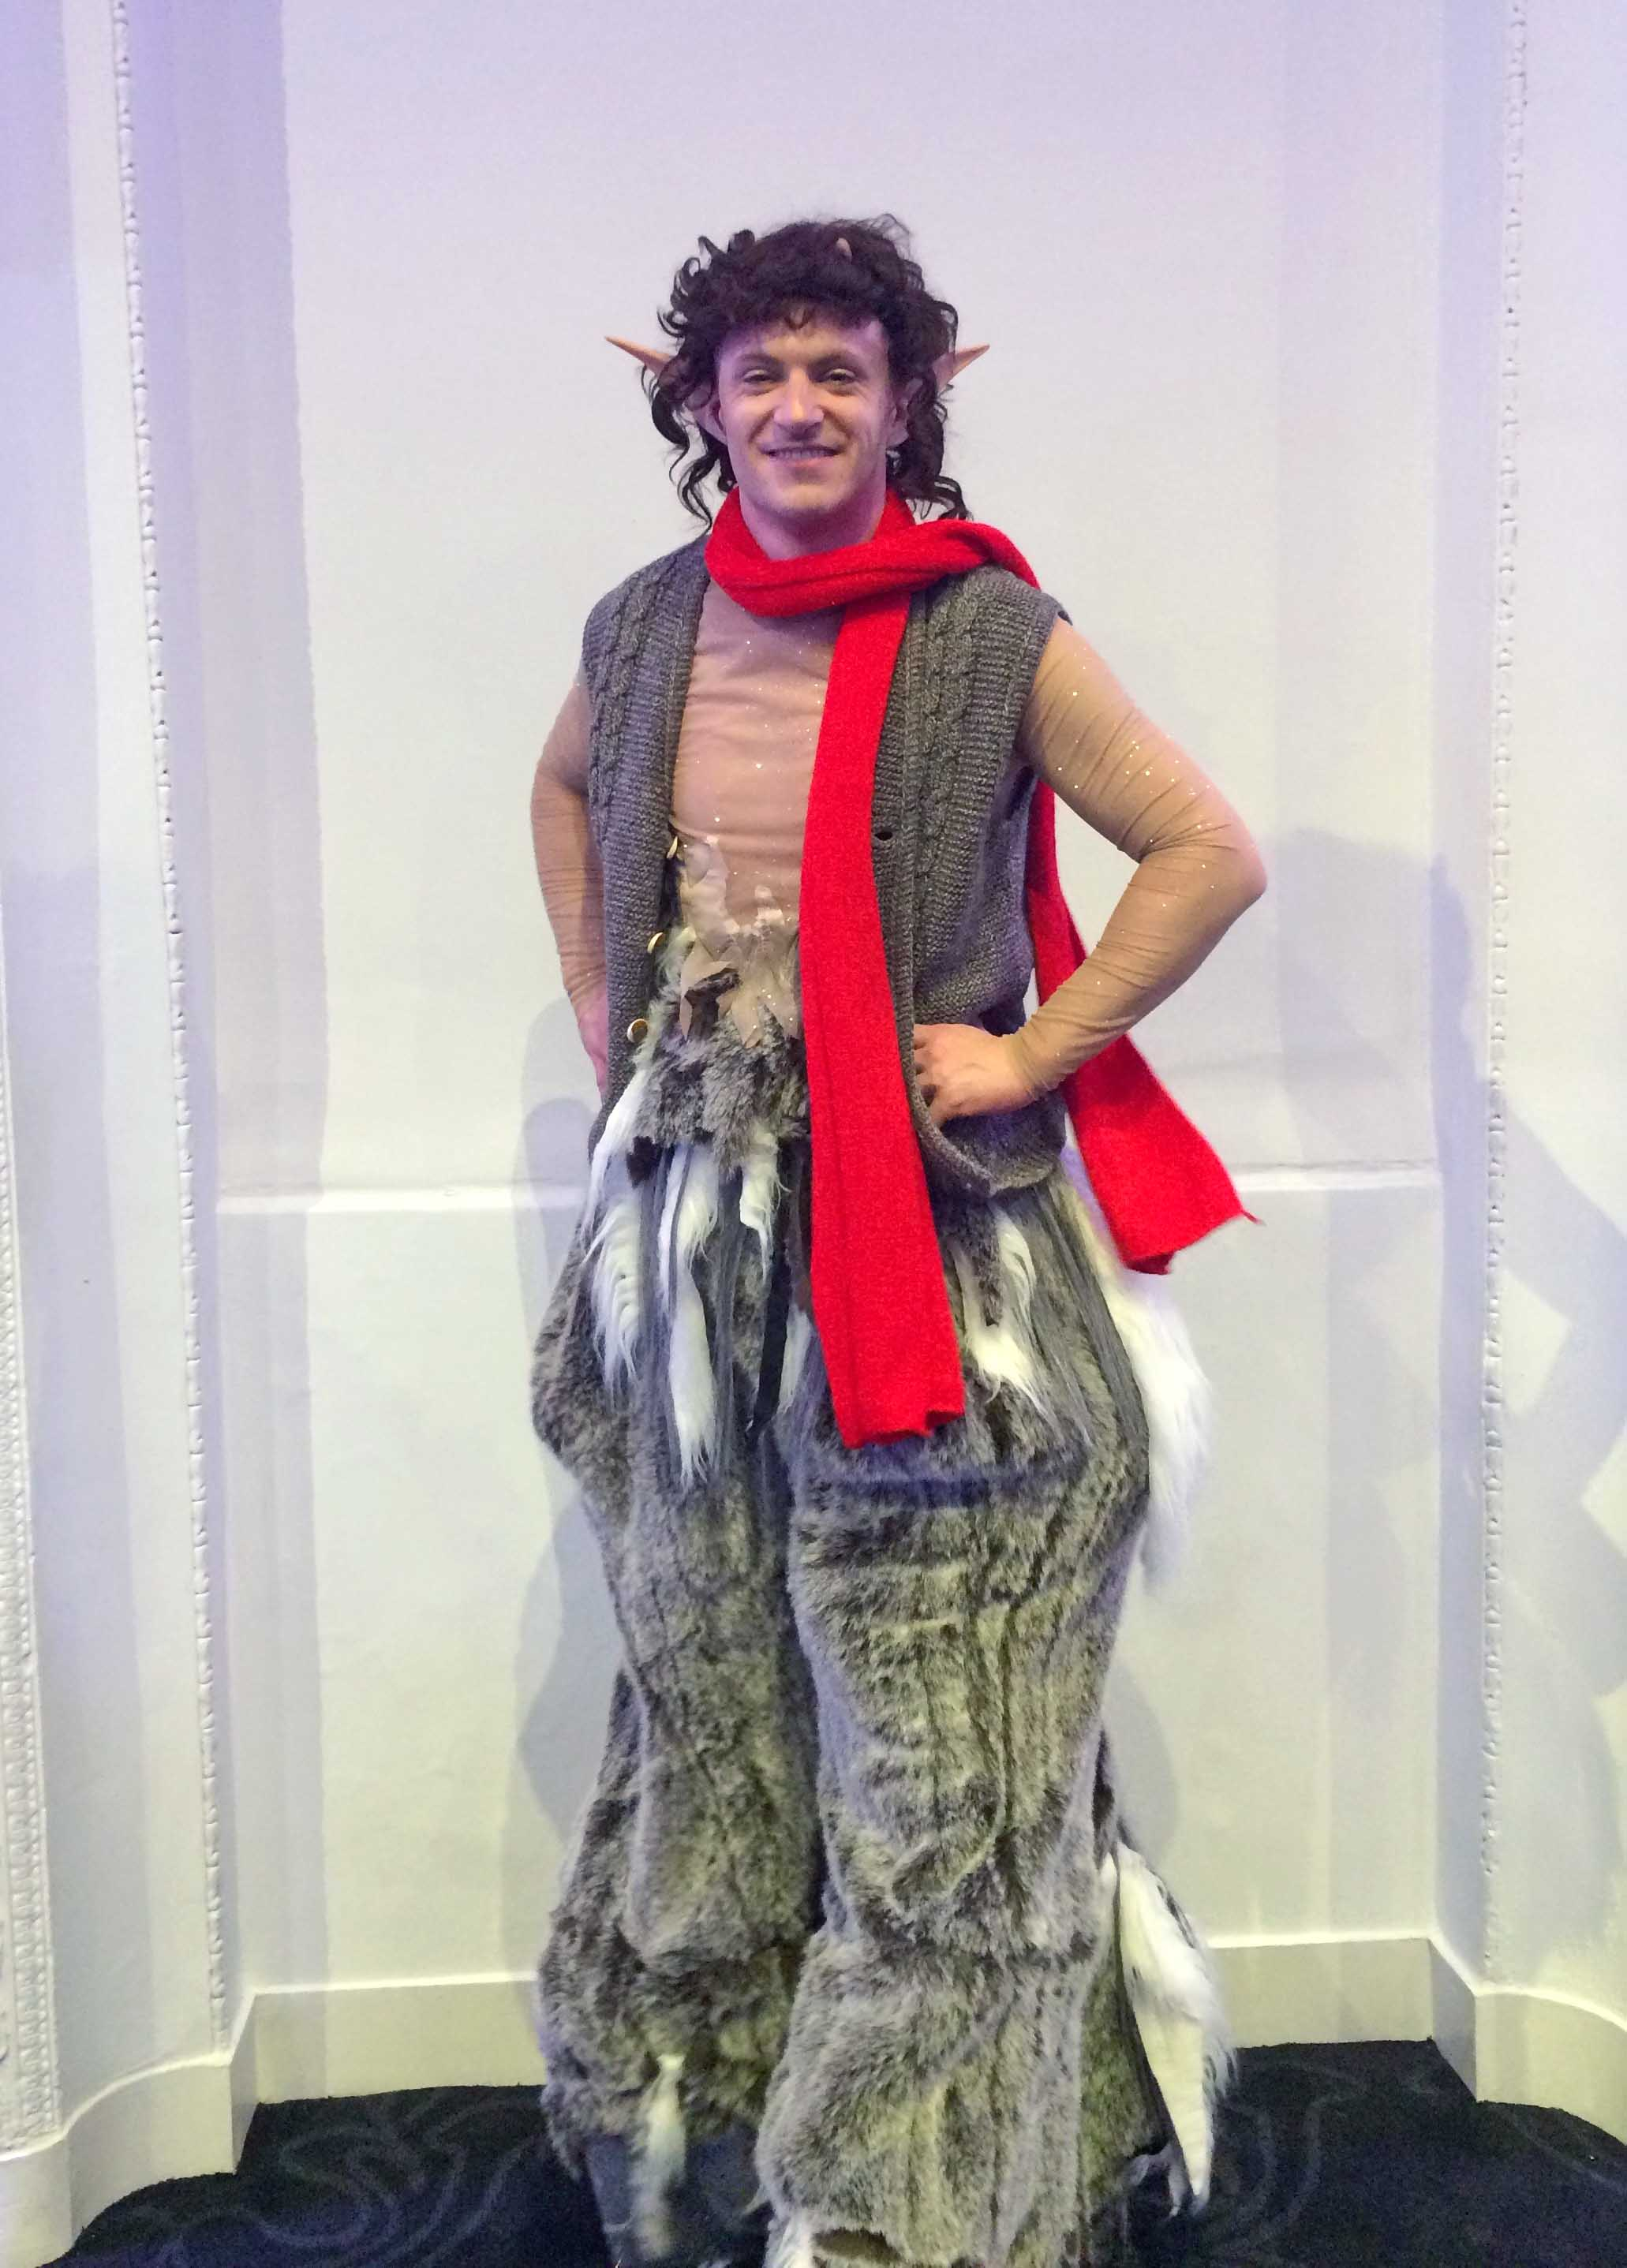 Mr Tumnus bouncy stilts character